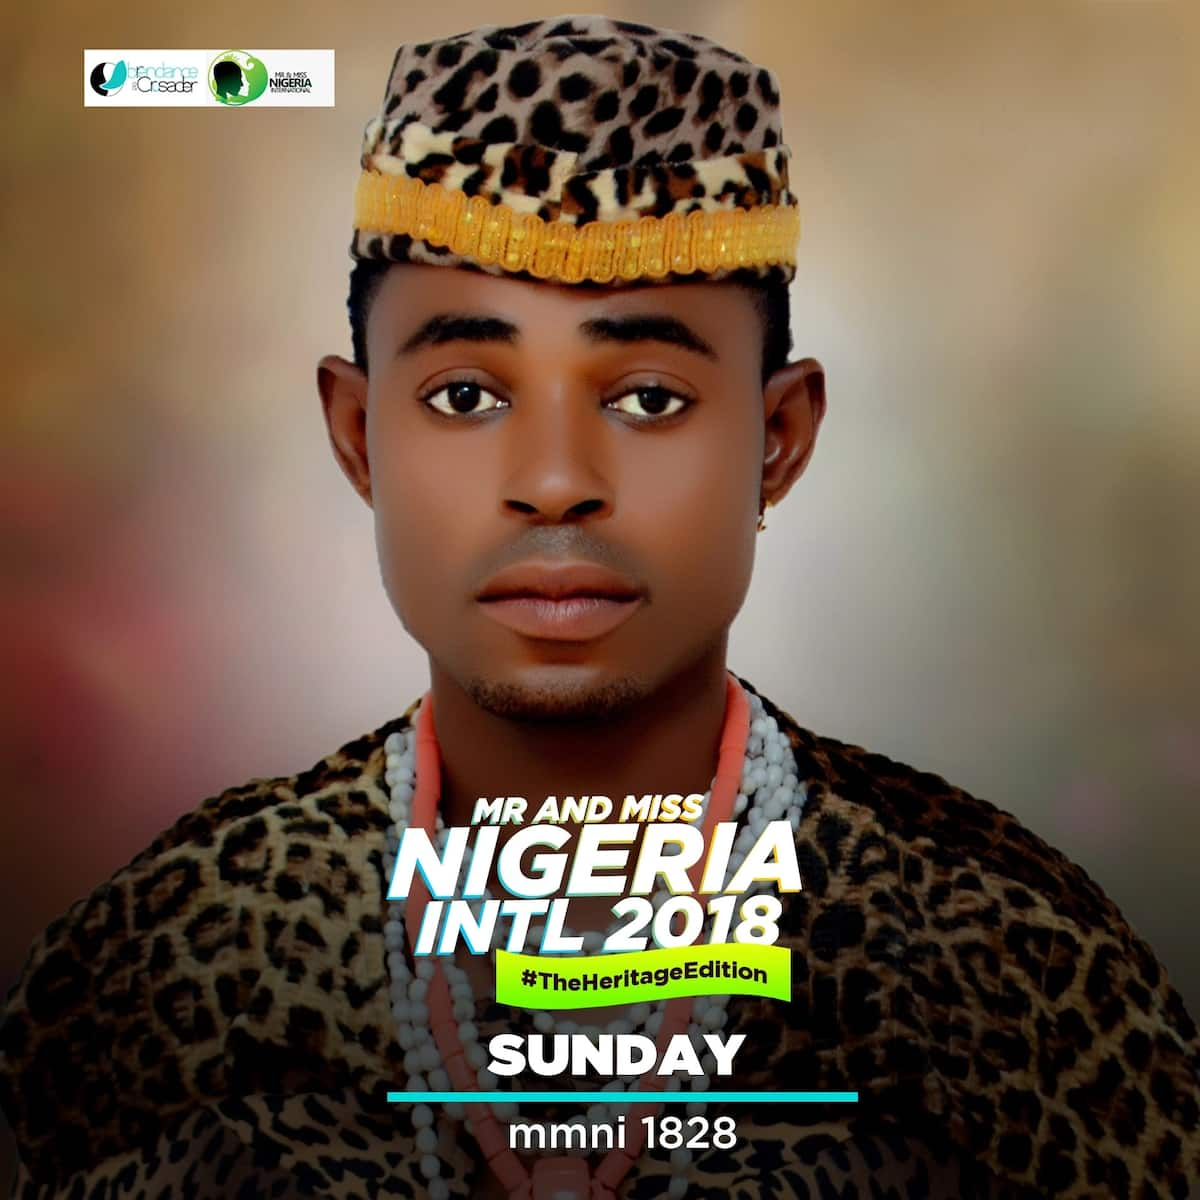 Mr and Miss Nigeria International unveils the 2018 contestants for screening and voting